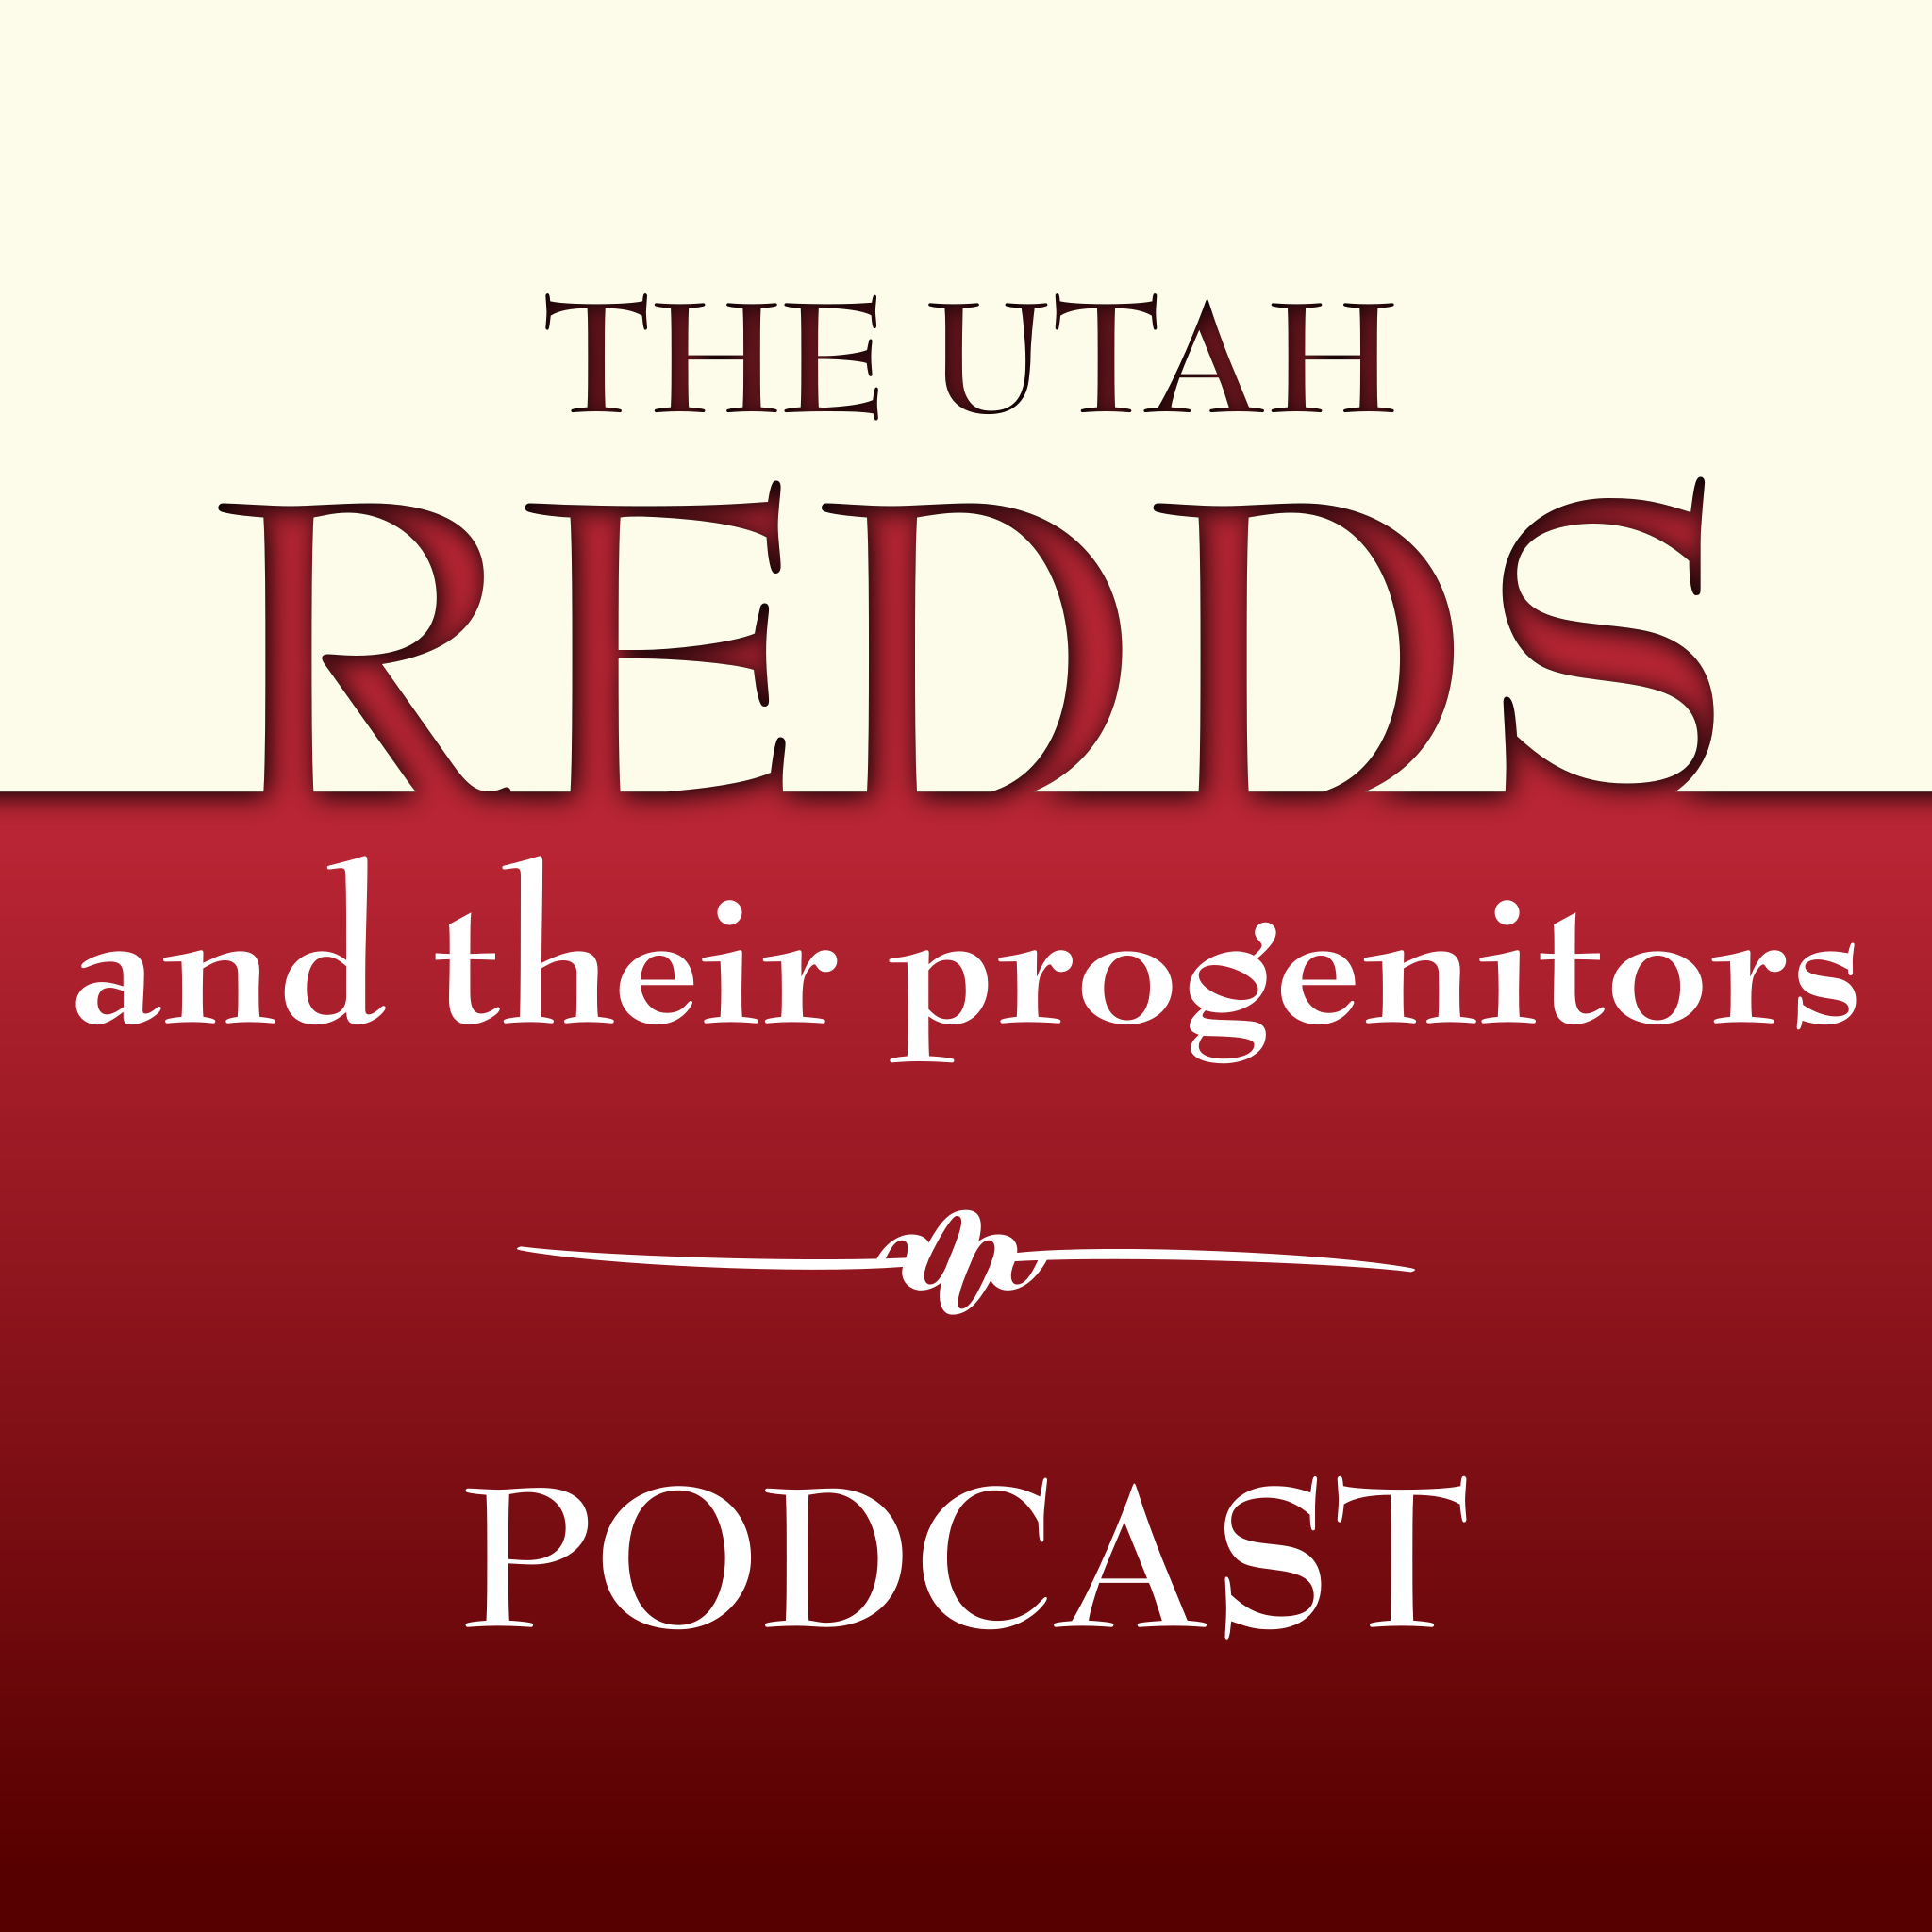 The Utah Redds and Their Progenitors Podcast – Chapter 3